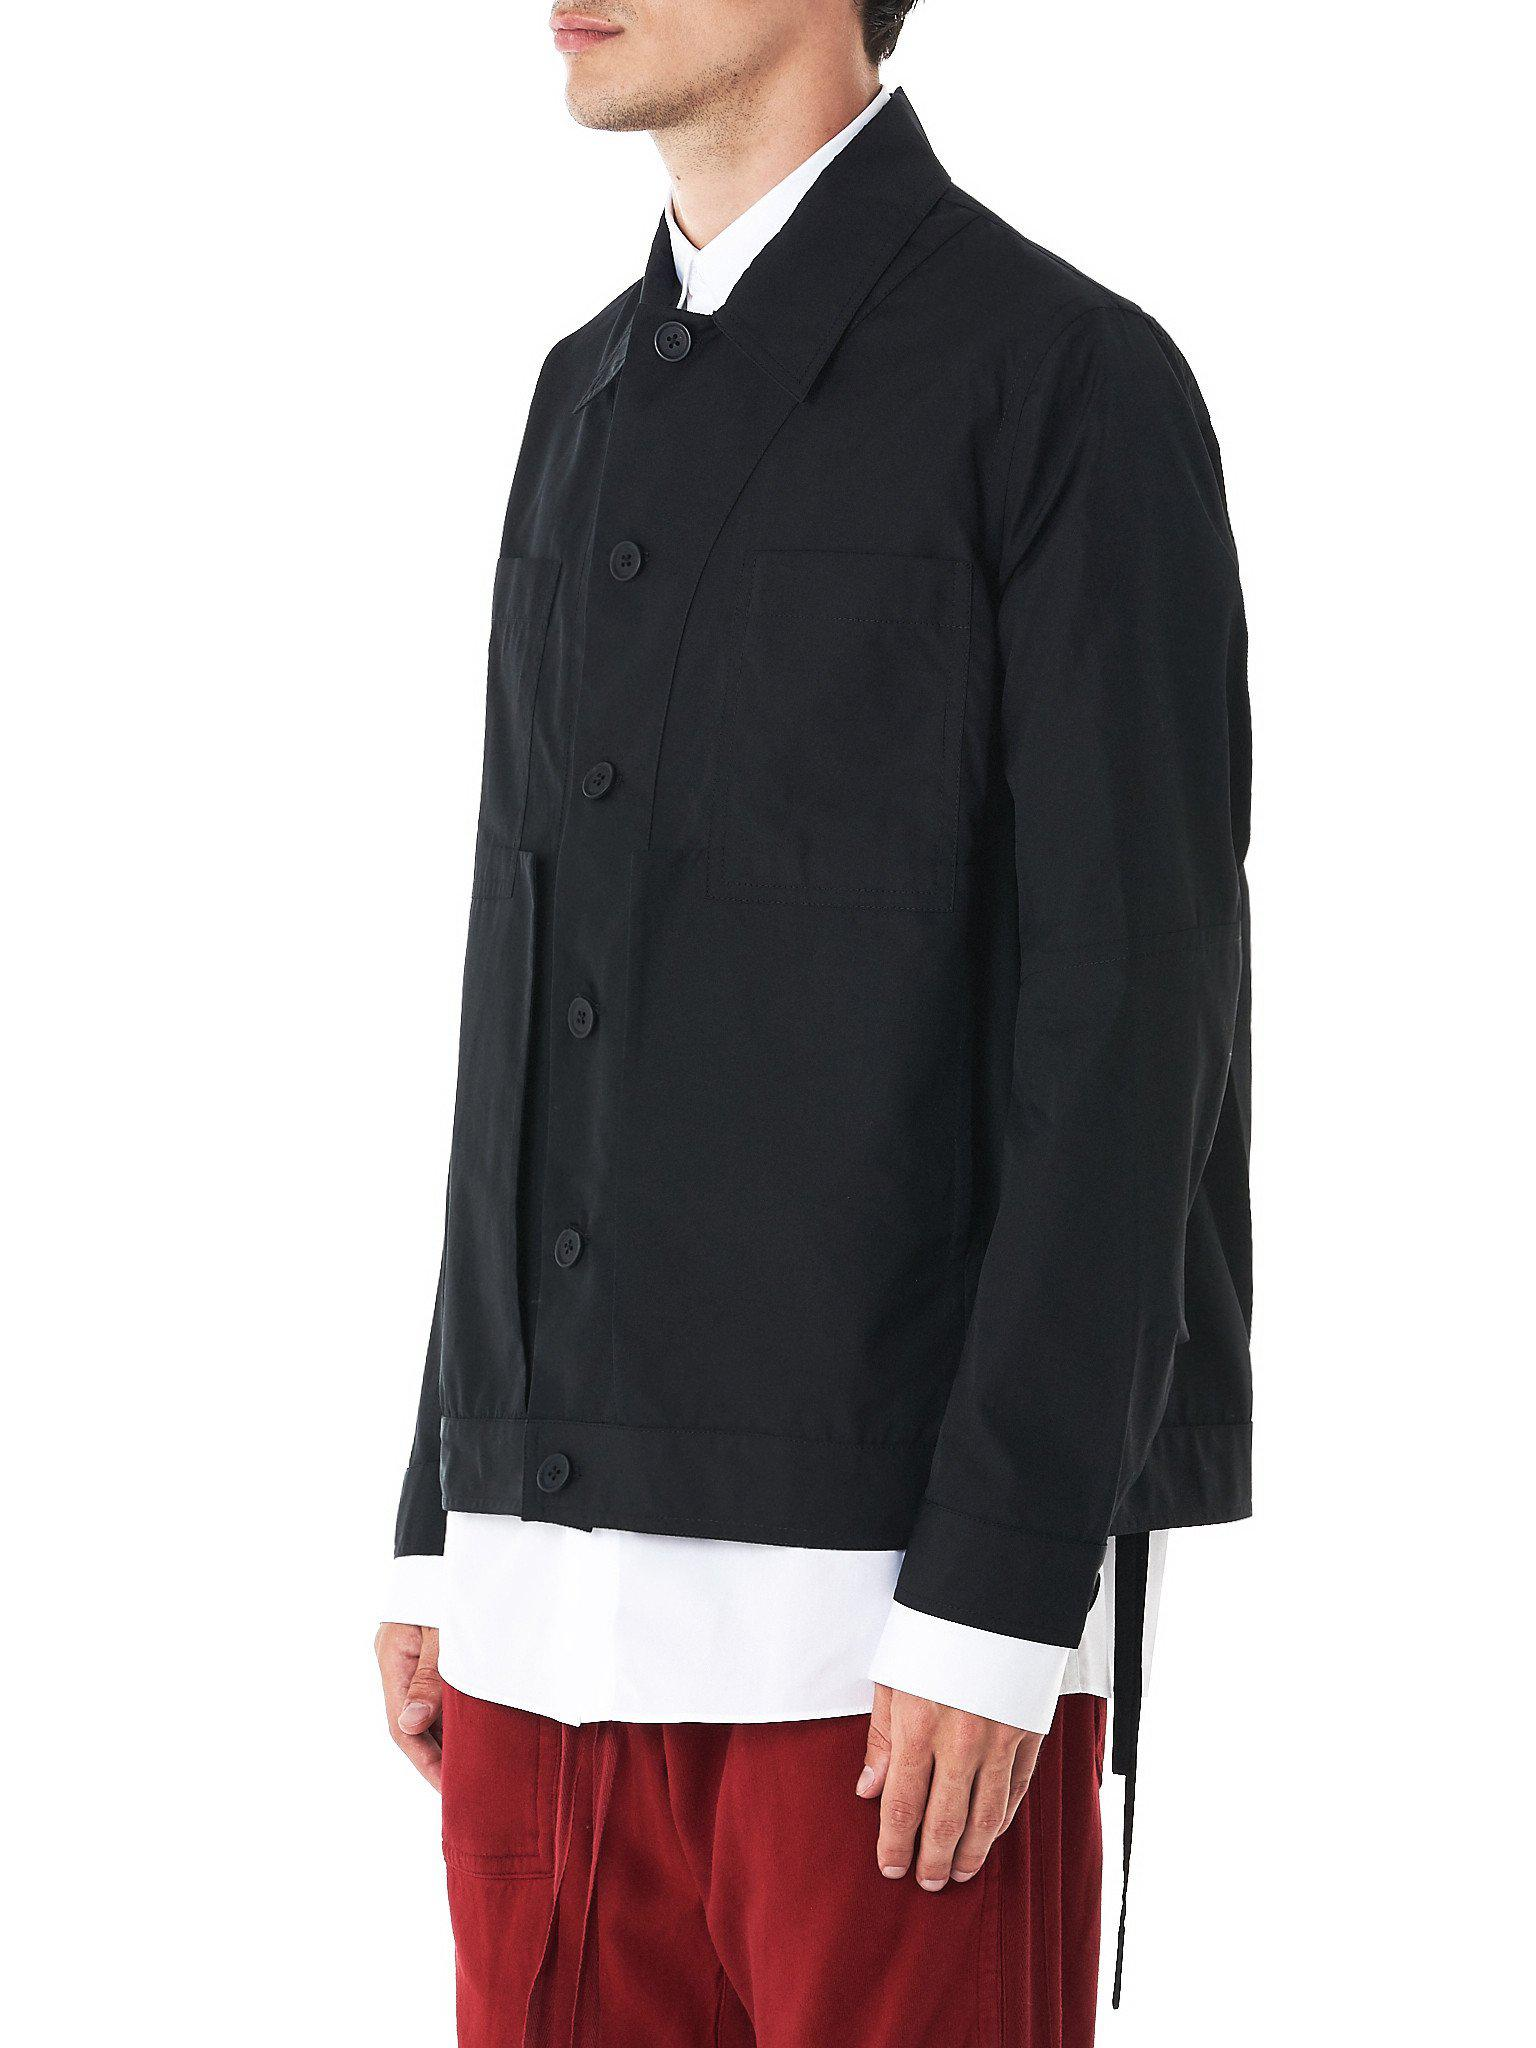 Craig green Assemblage Button-down Work Jacket in Black for Men | Lyst